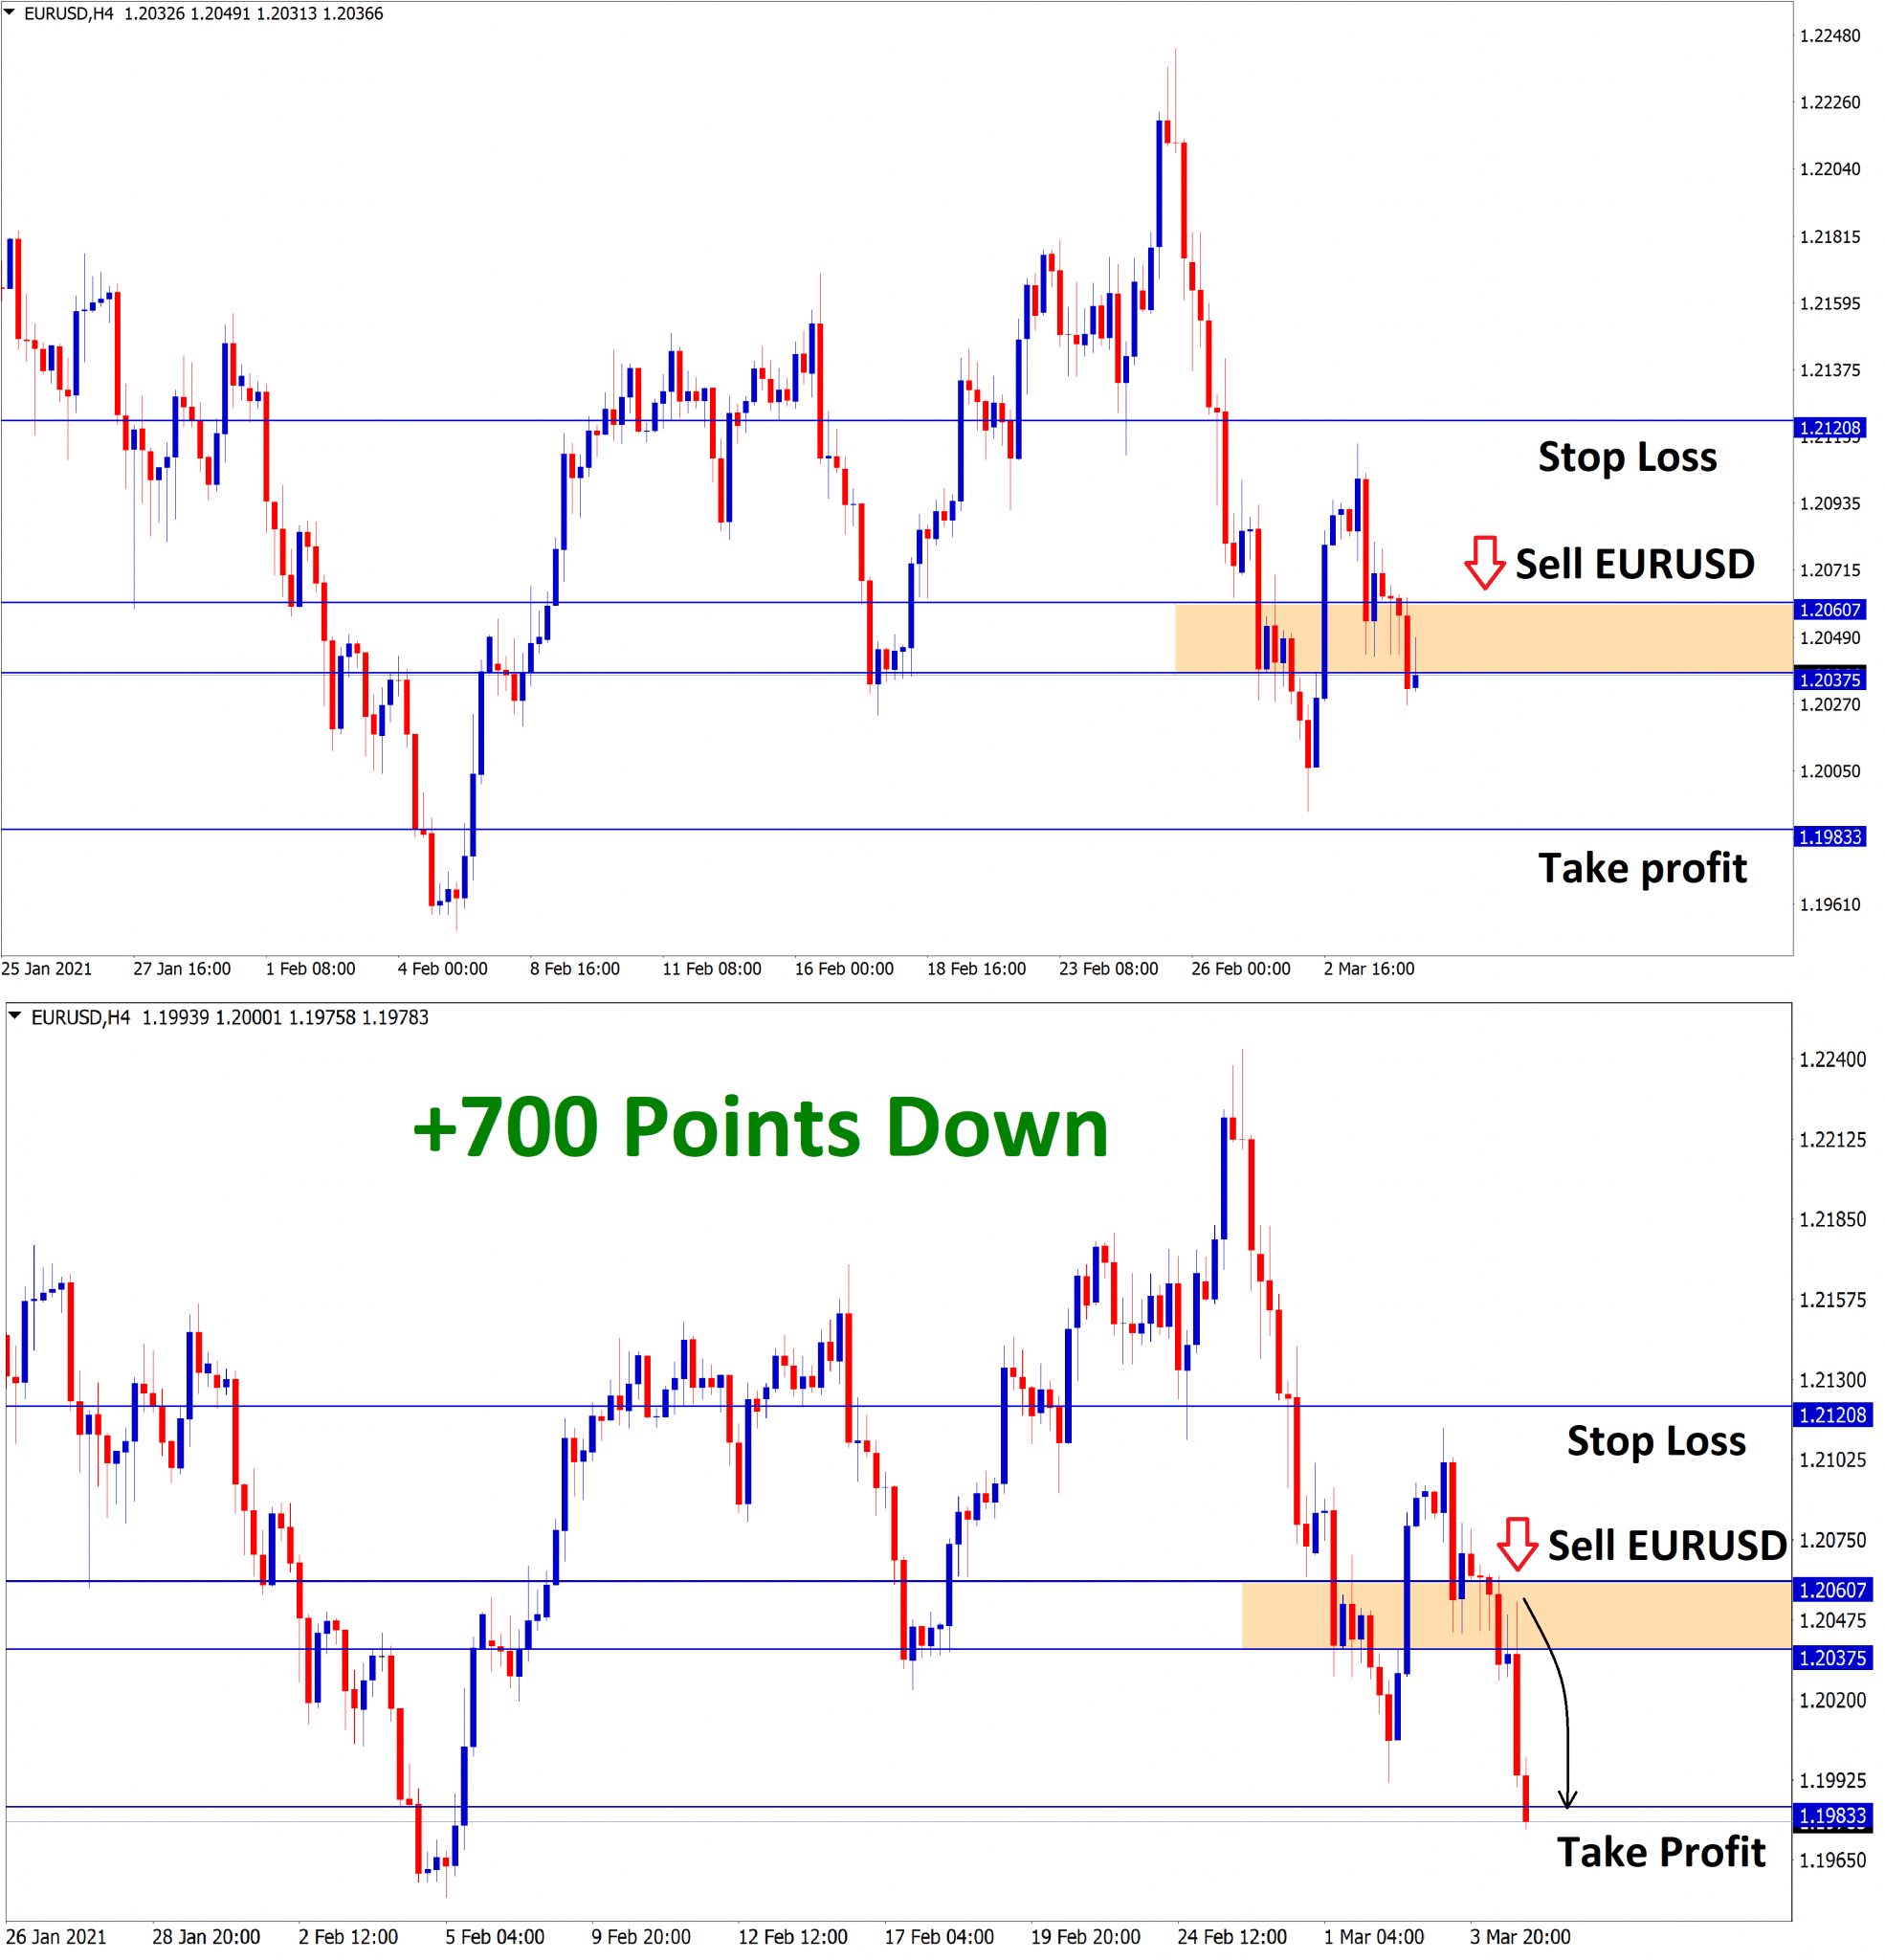 eurusd reached 700 points after the retest move